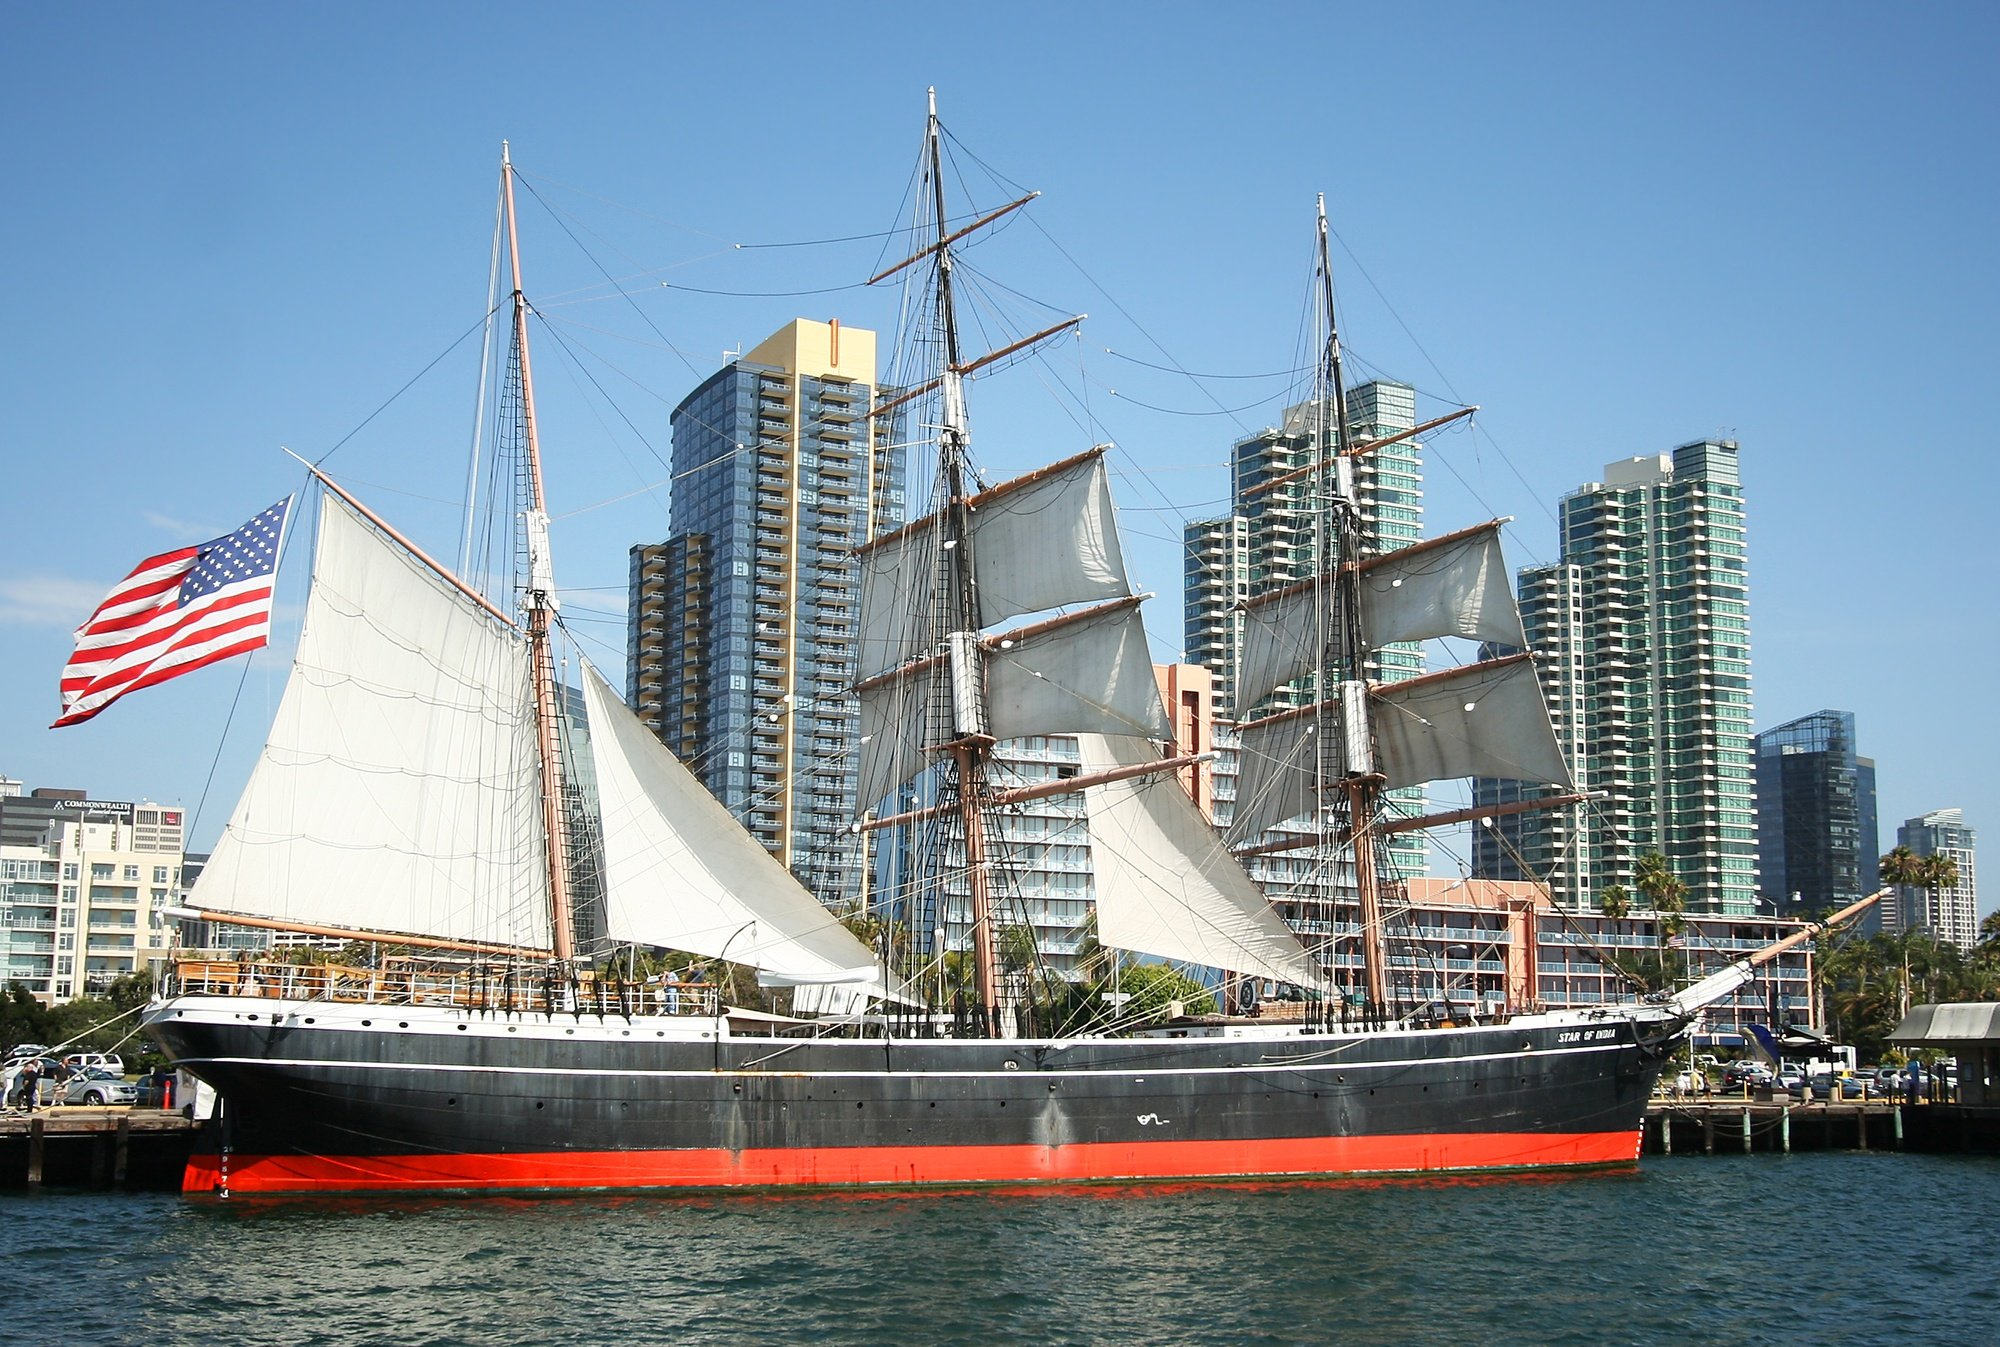 The Star of India at the Maritime Museum